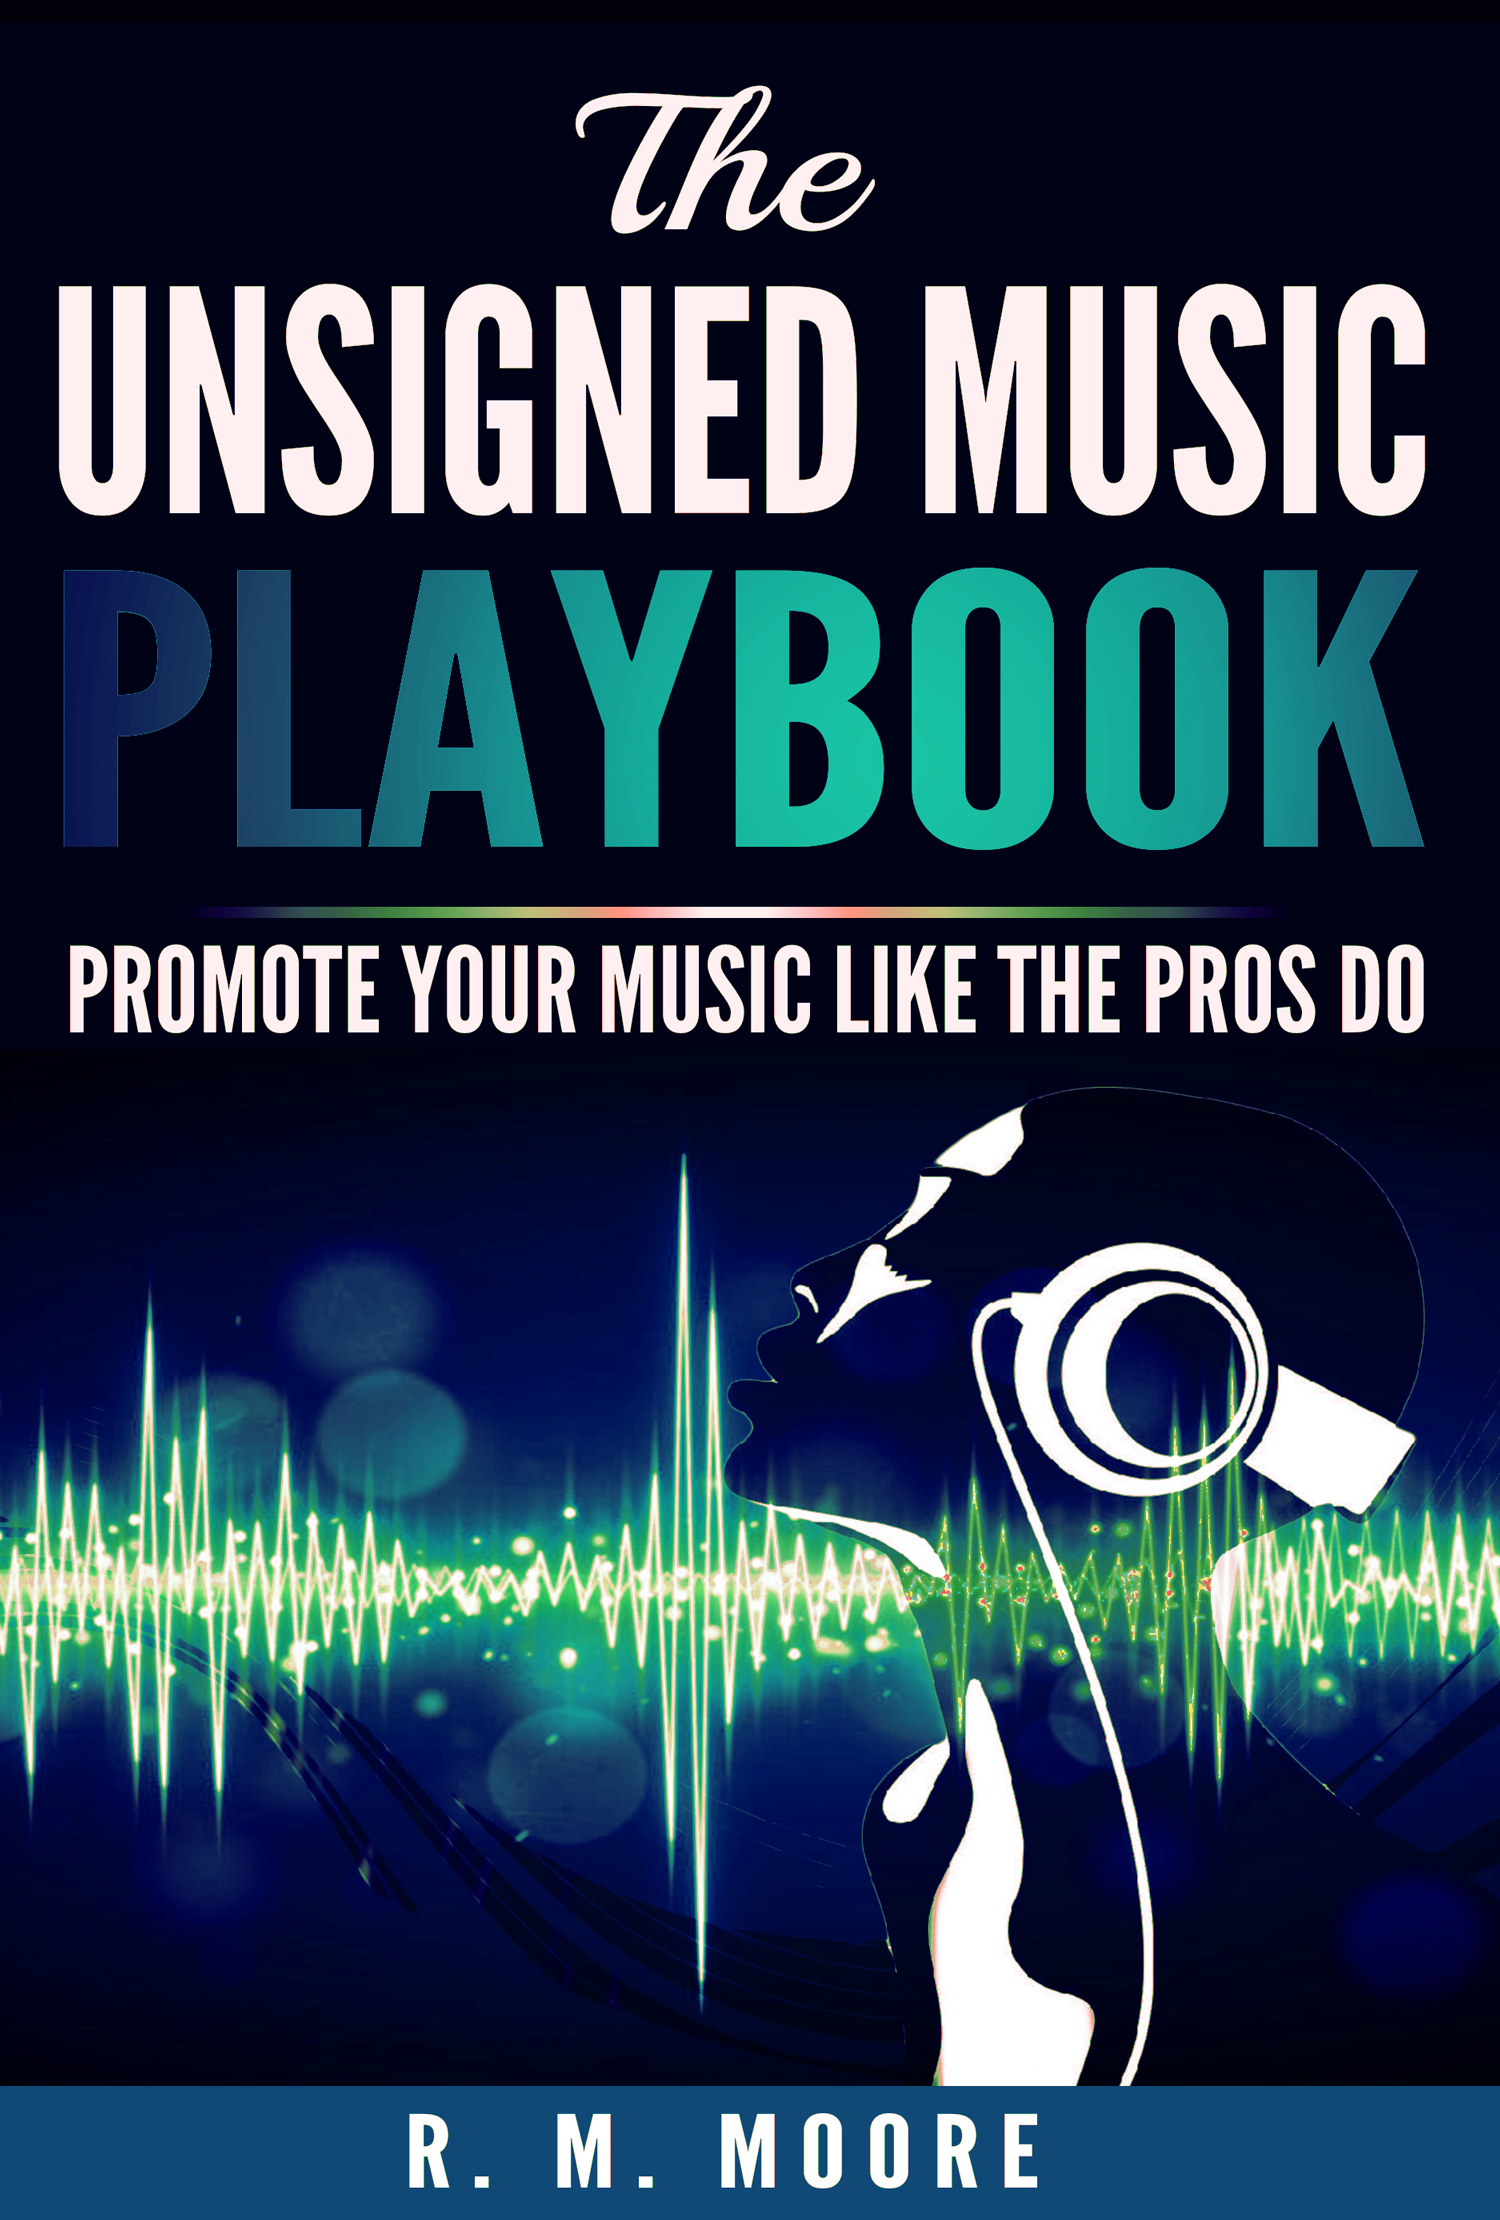 music business book